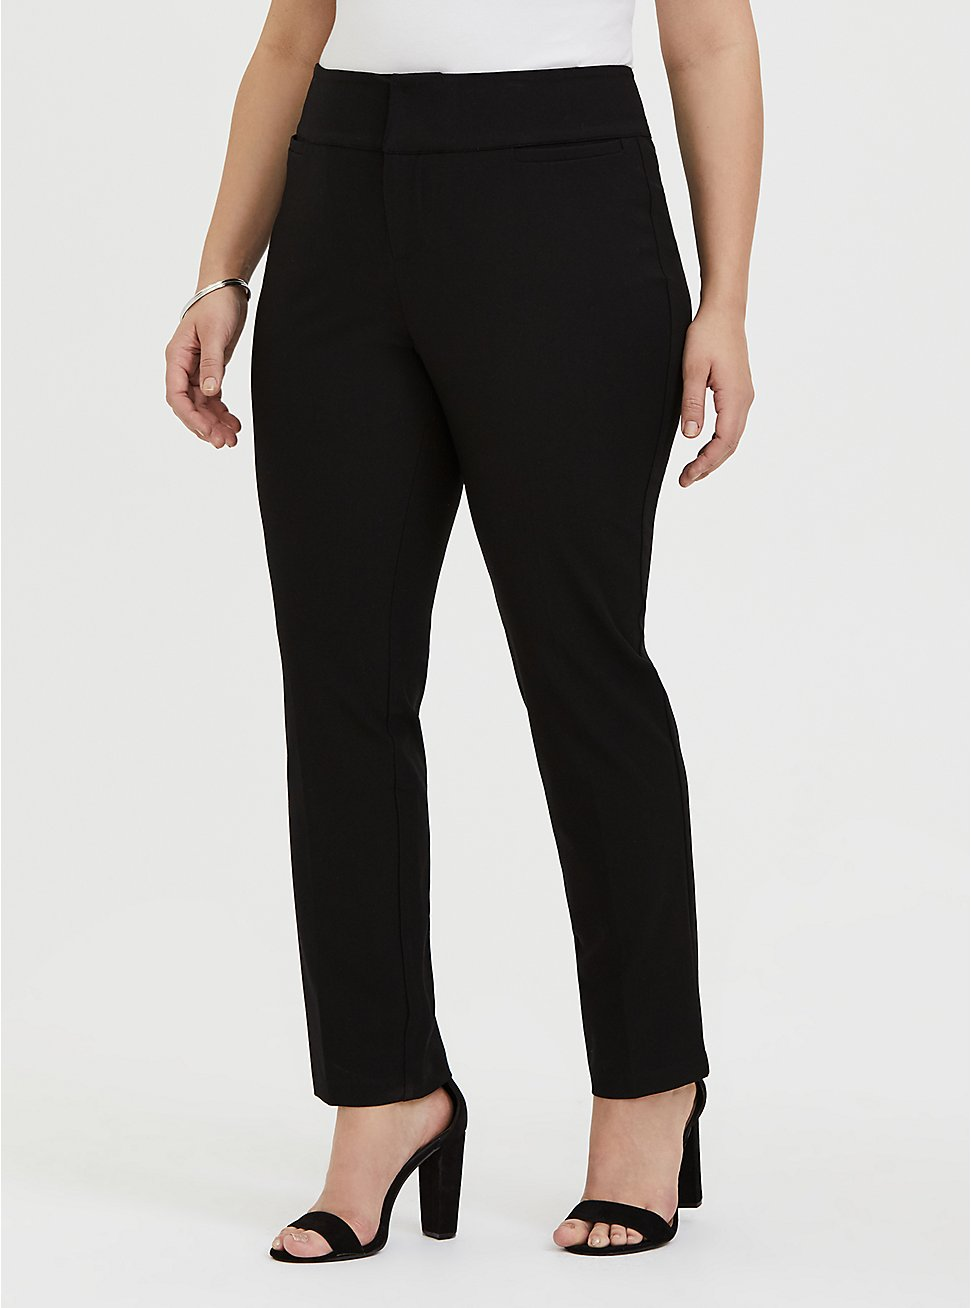 Straight Leg Pant - Structured Twill Black, DEEP BLACK, hi-res